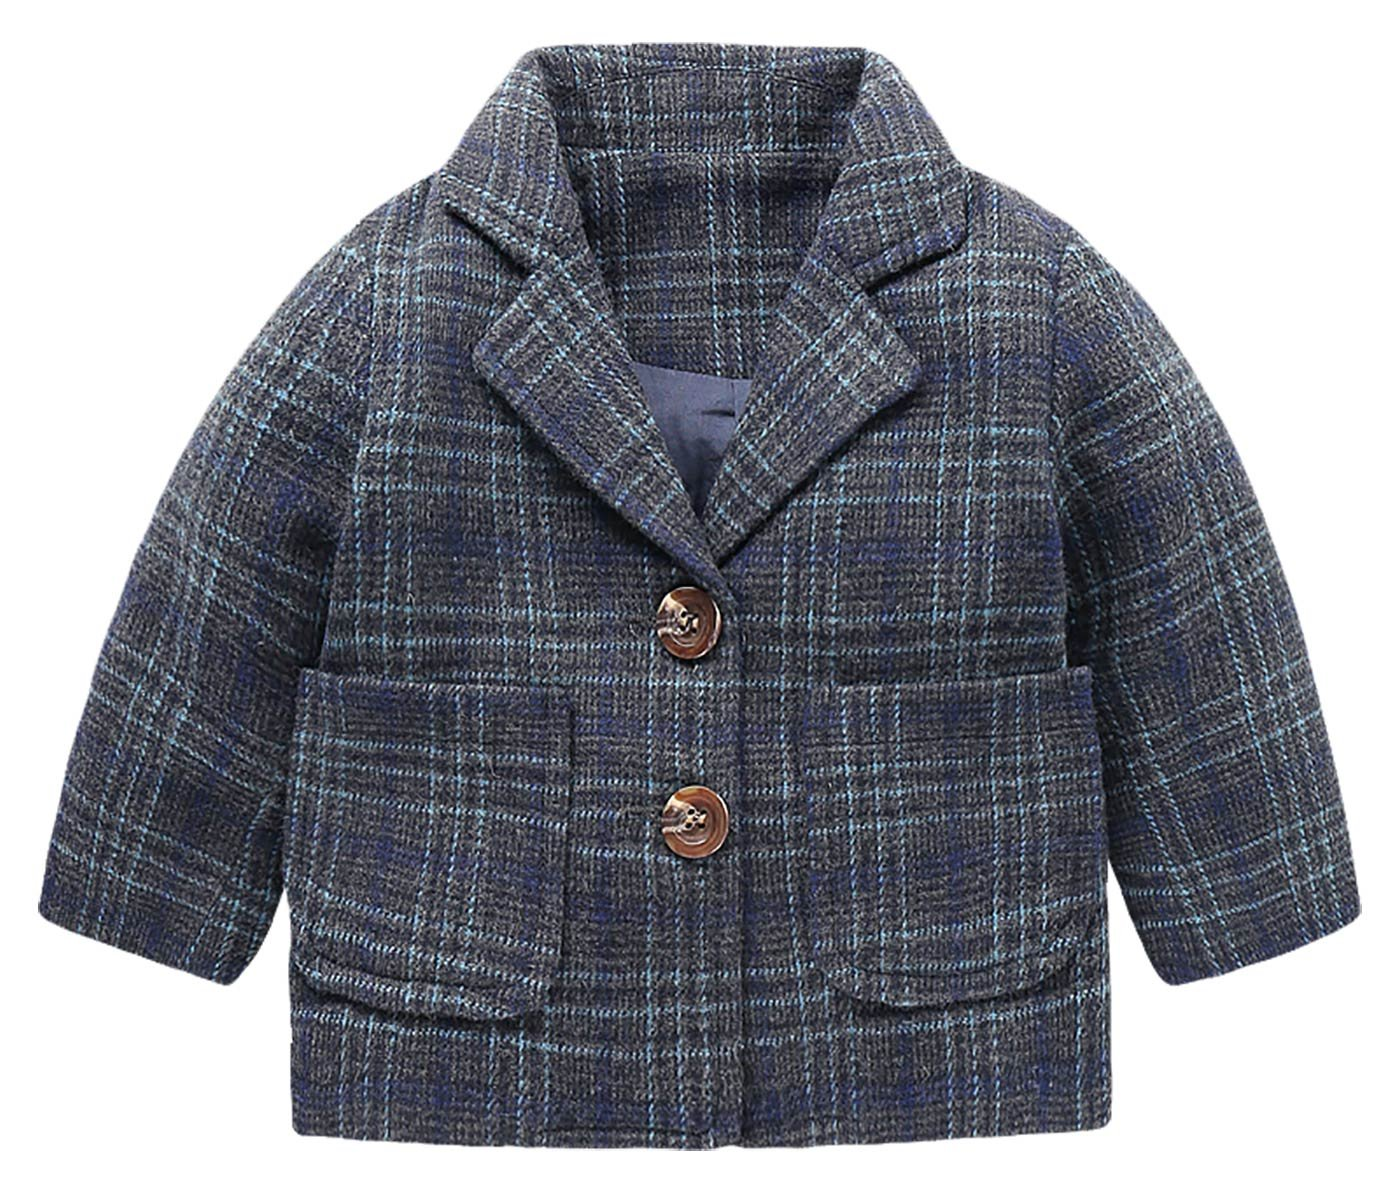 Right Euro Boys Plaid Blazer Clothing Coat Jacket Soft Cotton Both Side With Pocket Button Design Outerwear Coat Lapel Long Sleeve Outwear Purplish Blue 3-4 T